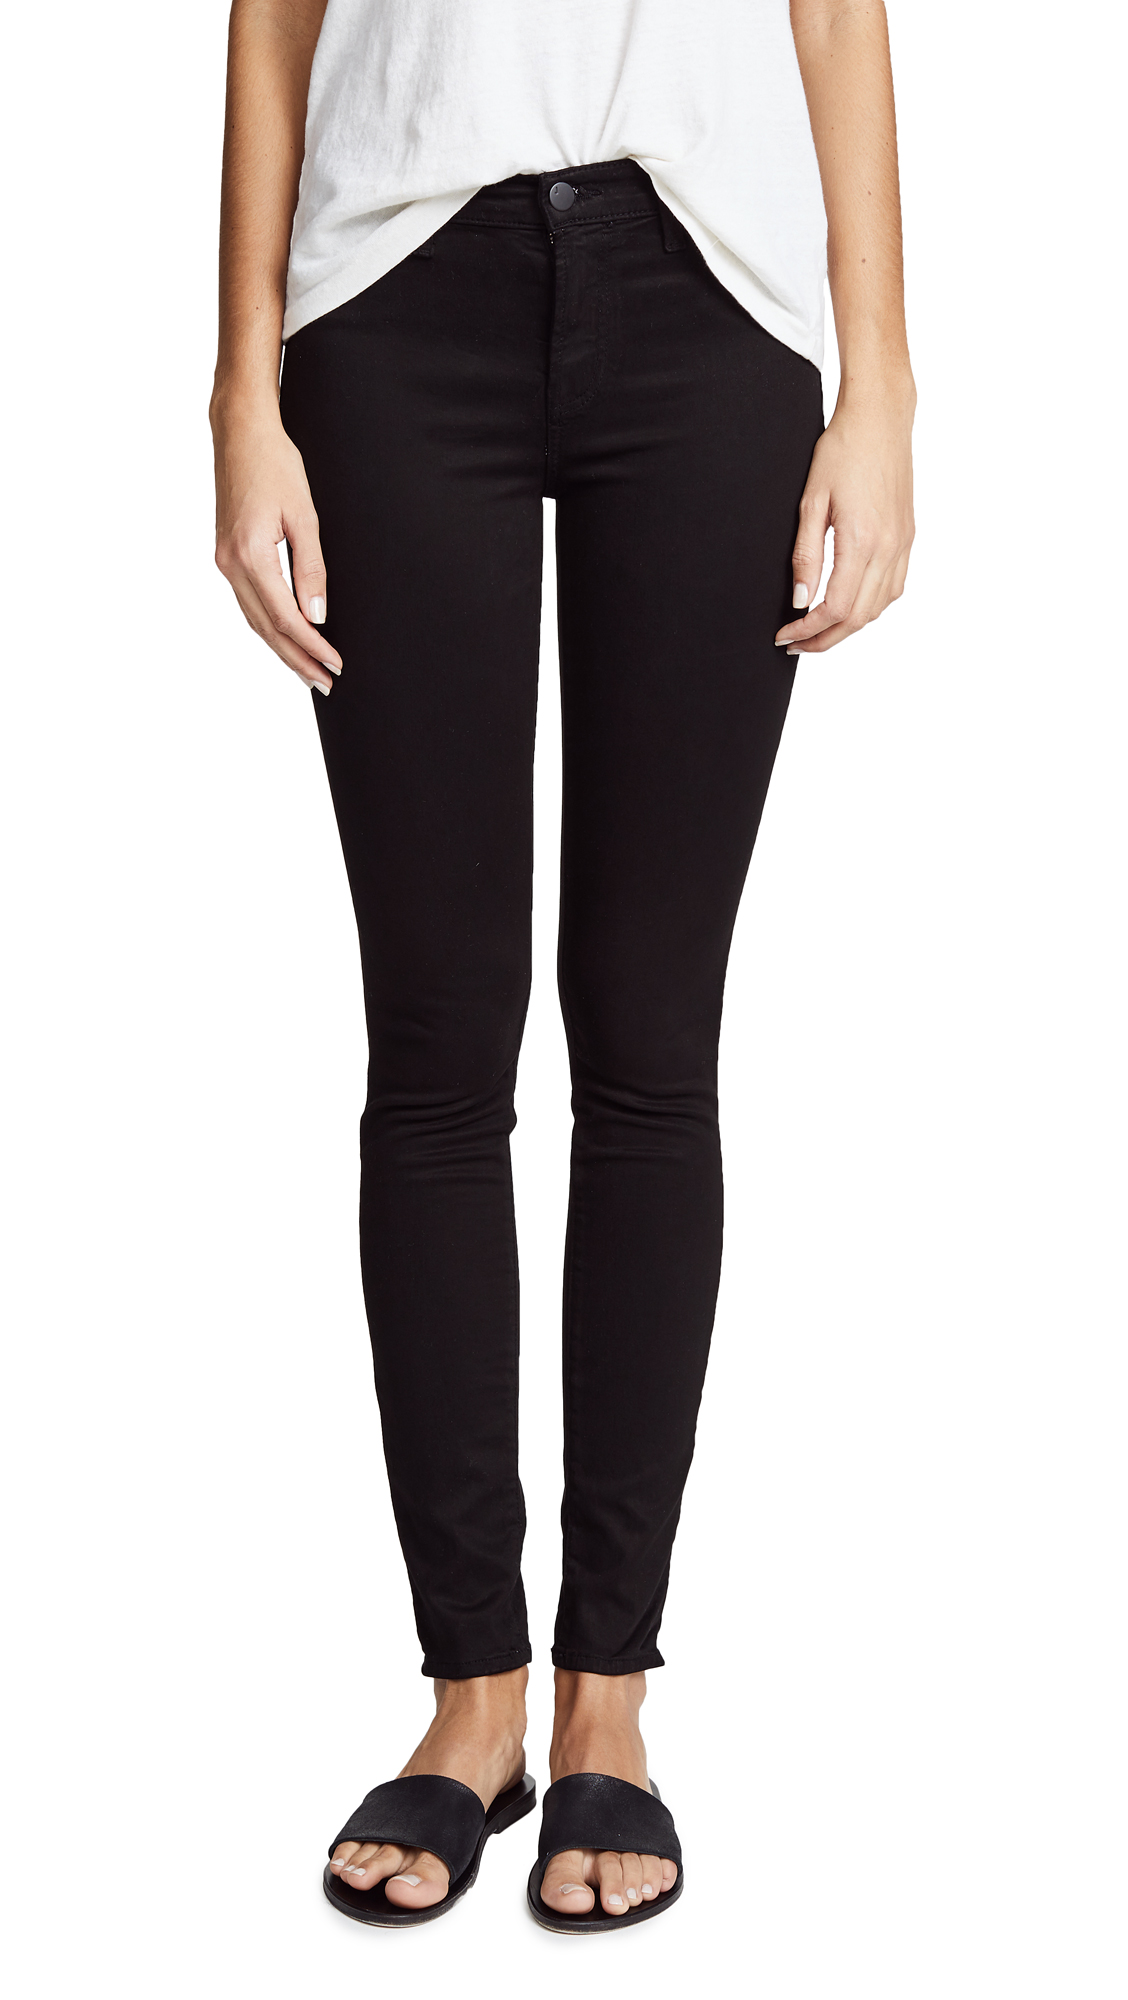 485 Super Skinny Luxe Sateen Jeans